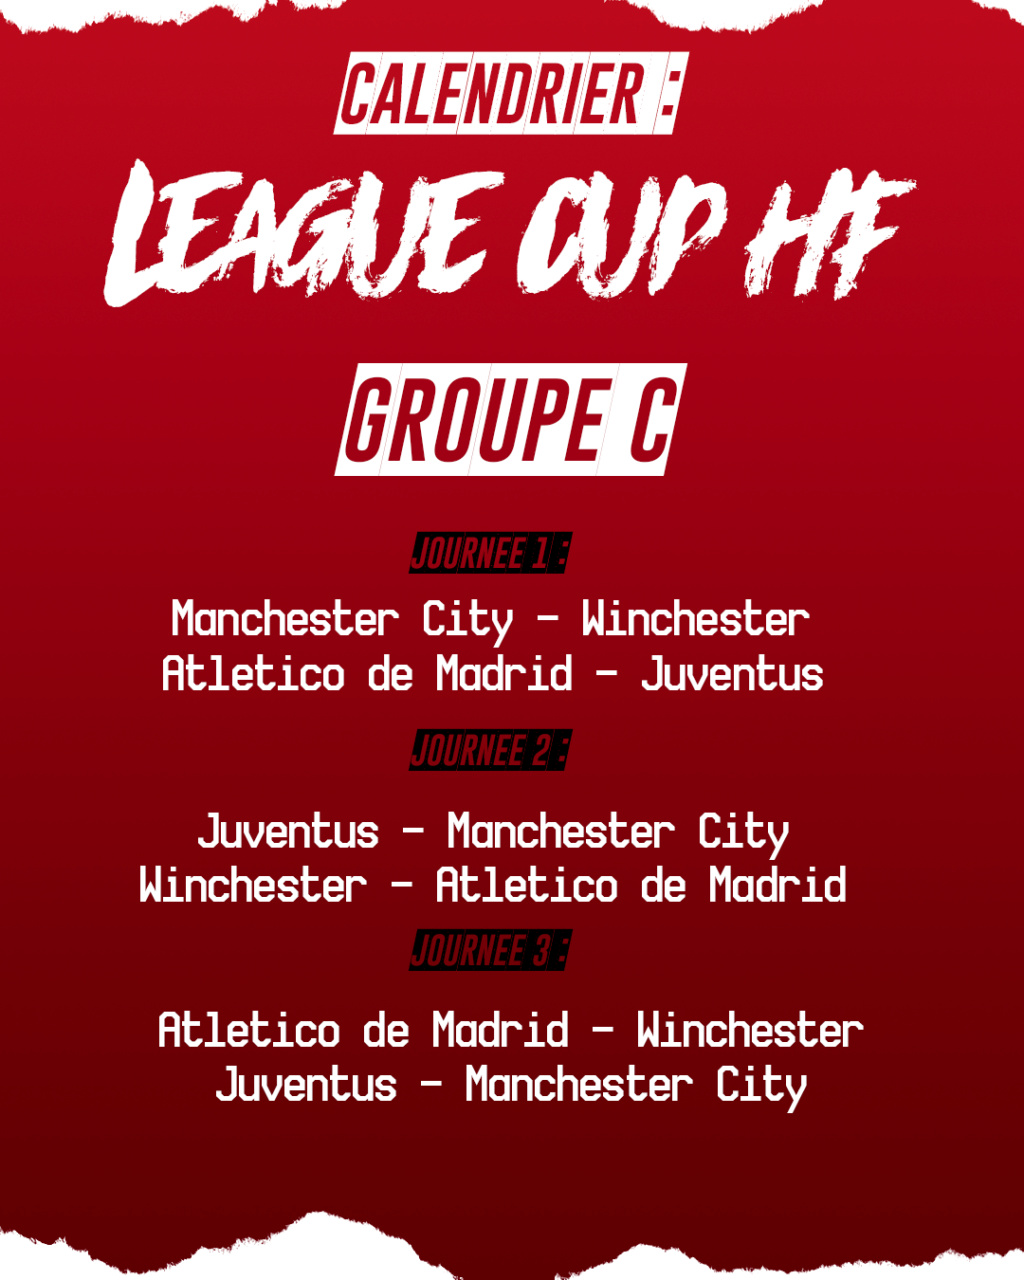 Calendrier League Cup HF : Groupe C Groupe12